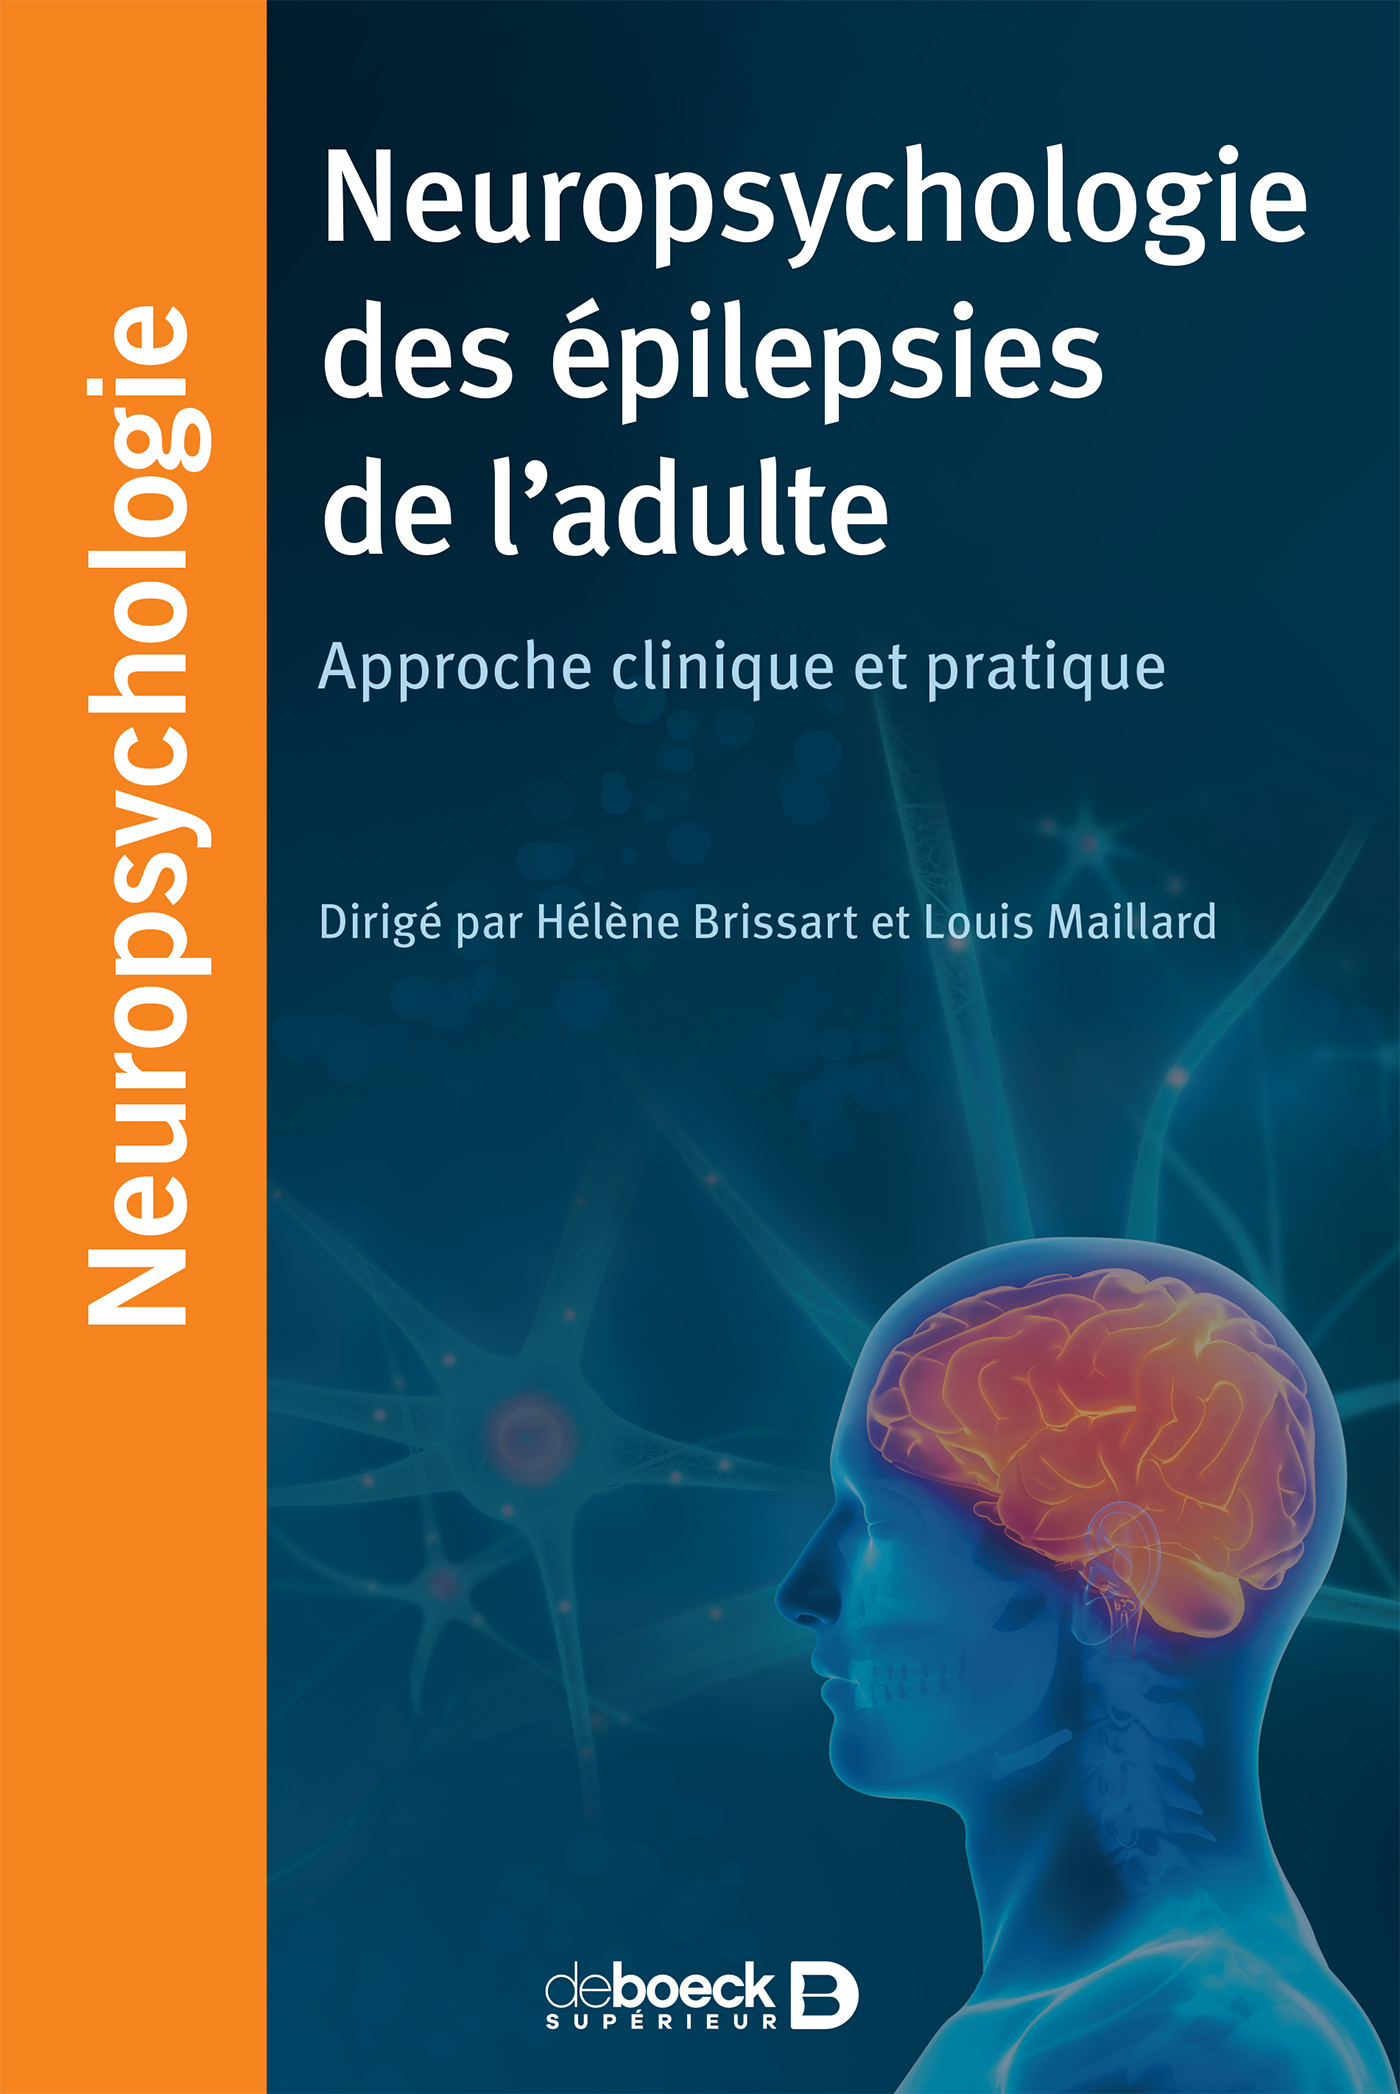 NEUROPSYCHOLOGIE DES EPILEPSIES DE L'ADULTE